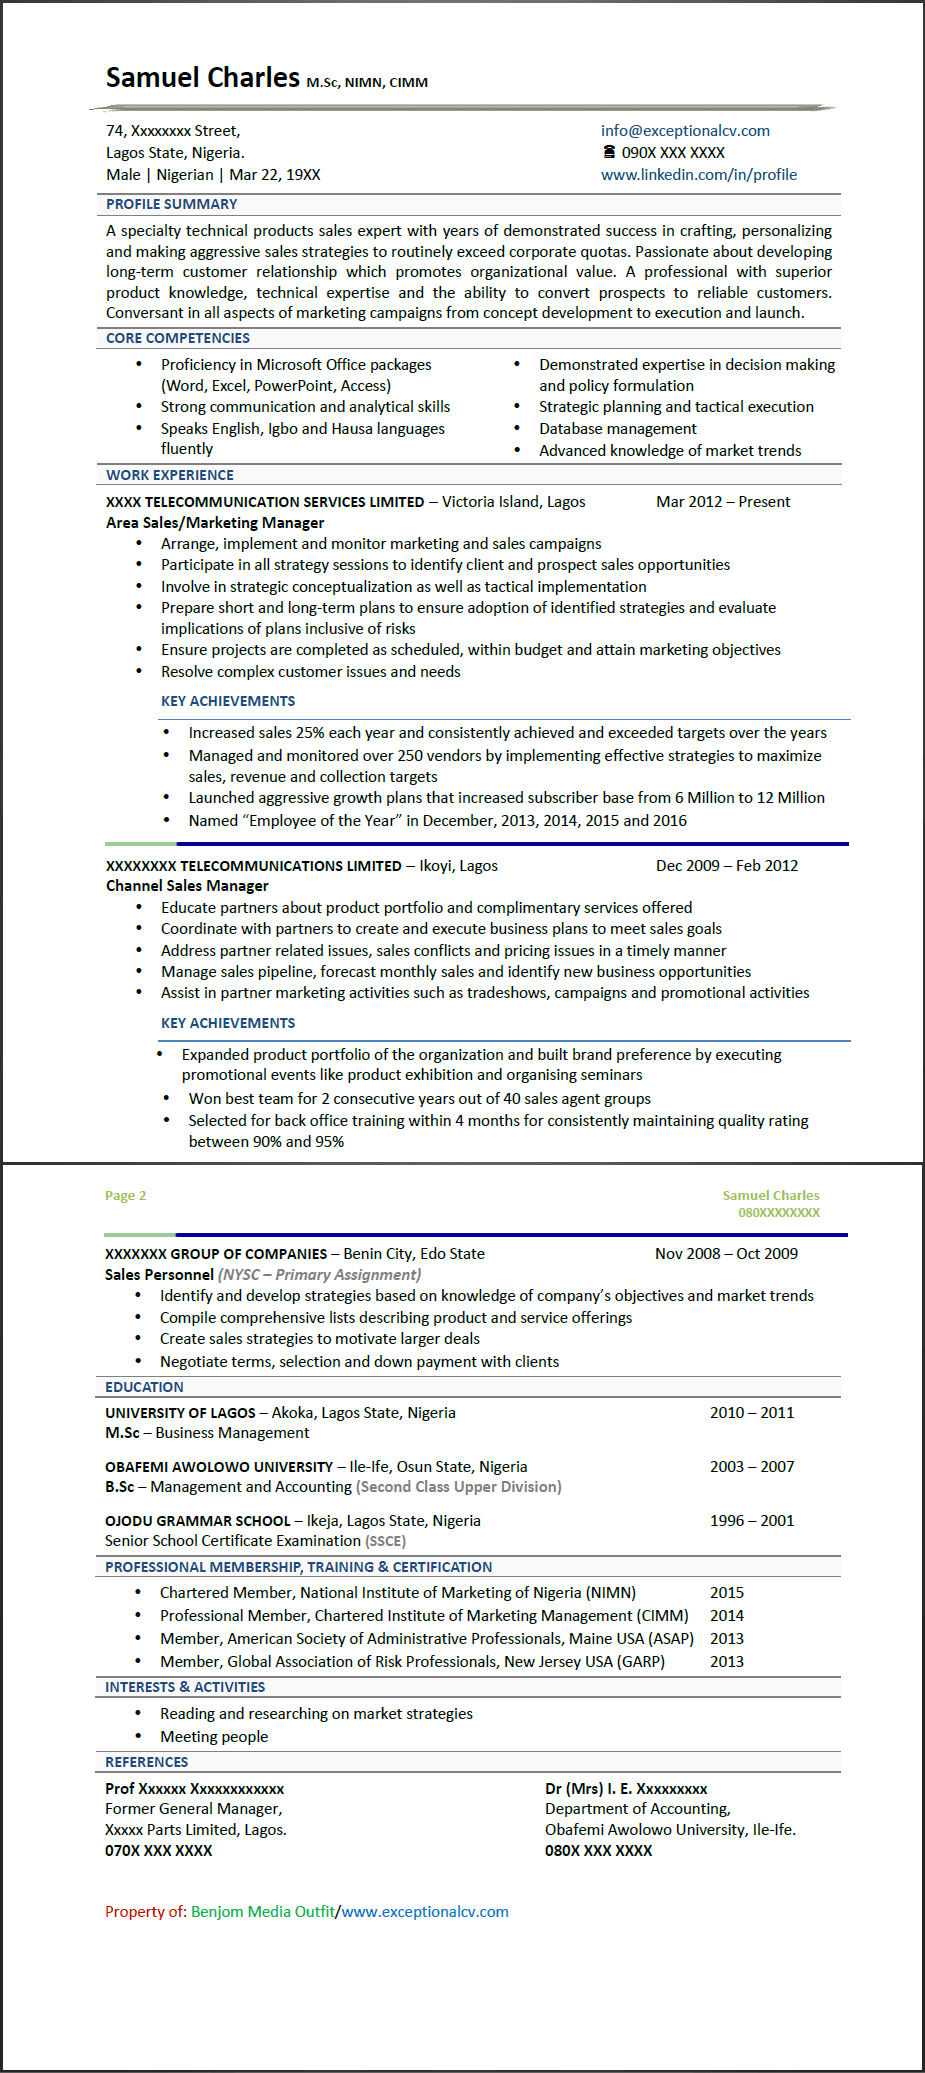 complete-step-step-guide-writing-successful-cv, Complete Step By Step Guide To Writing A Successful CV